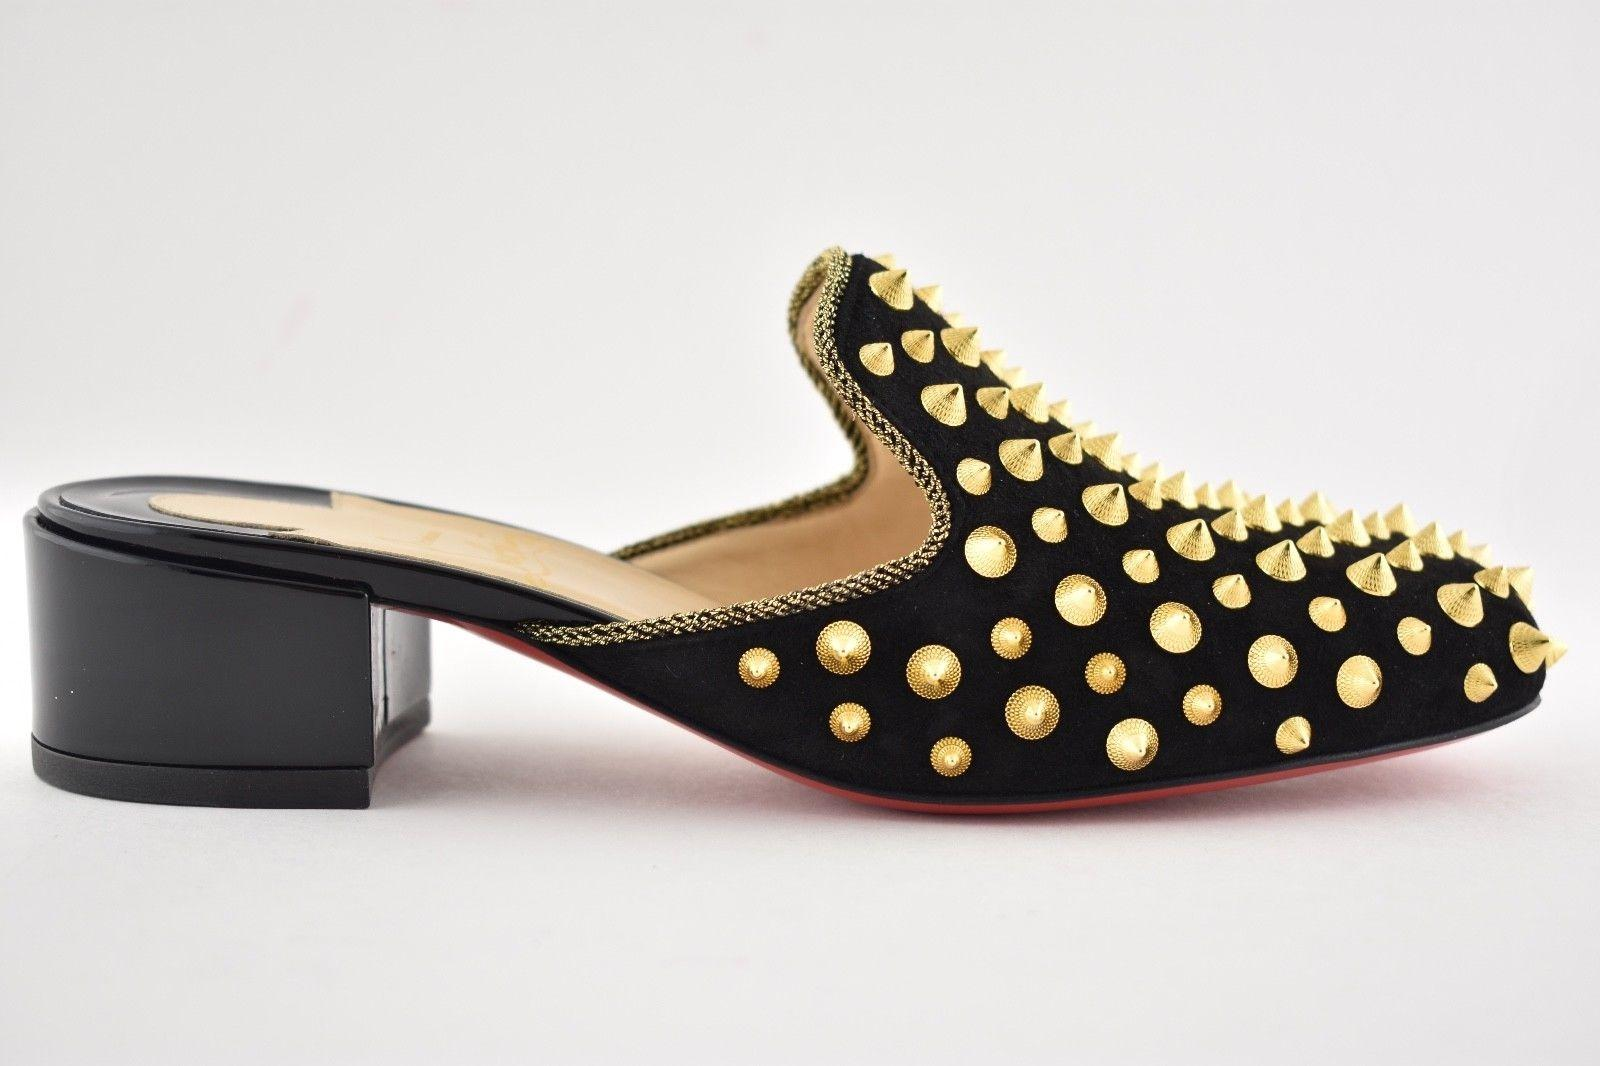 7f10bce9cfb ... sale heel mulaconka patent christian black suede gold flat stud spike  slides louboutin loafer 35 mules